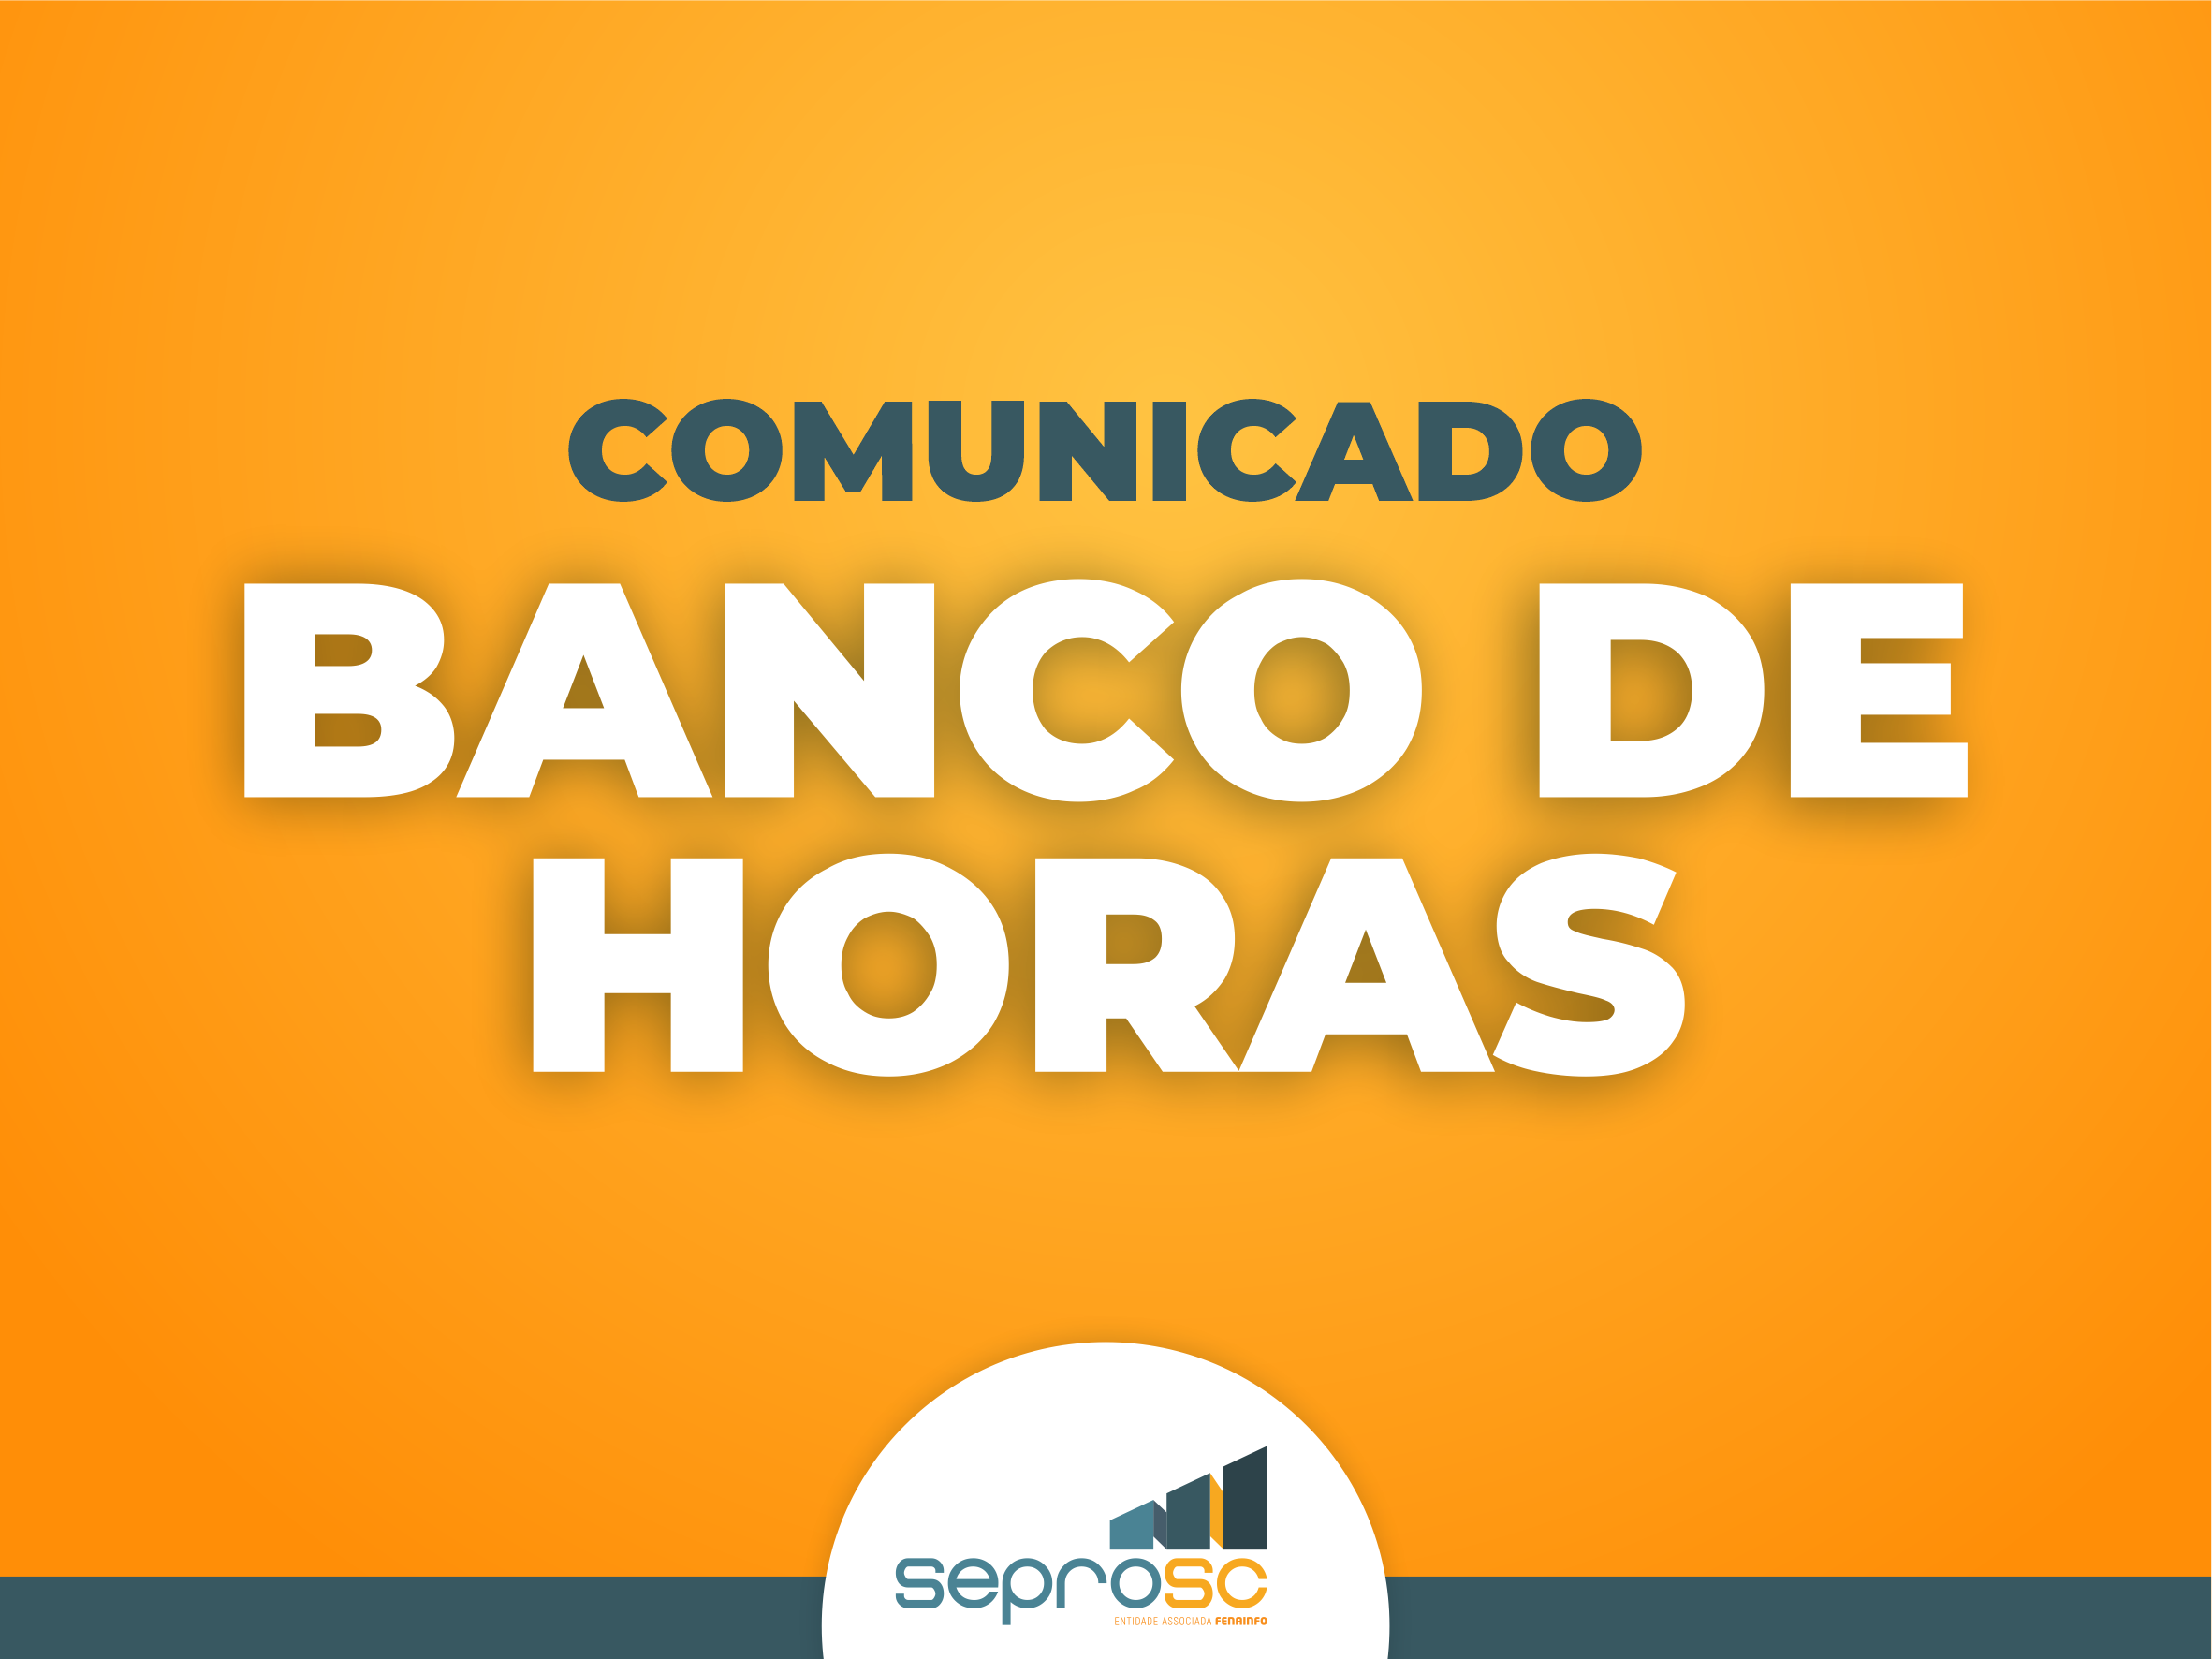 Comunicado - Banco de Horas